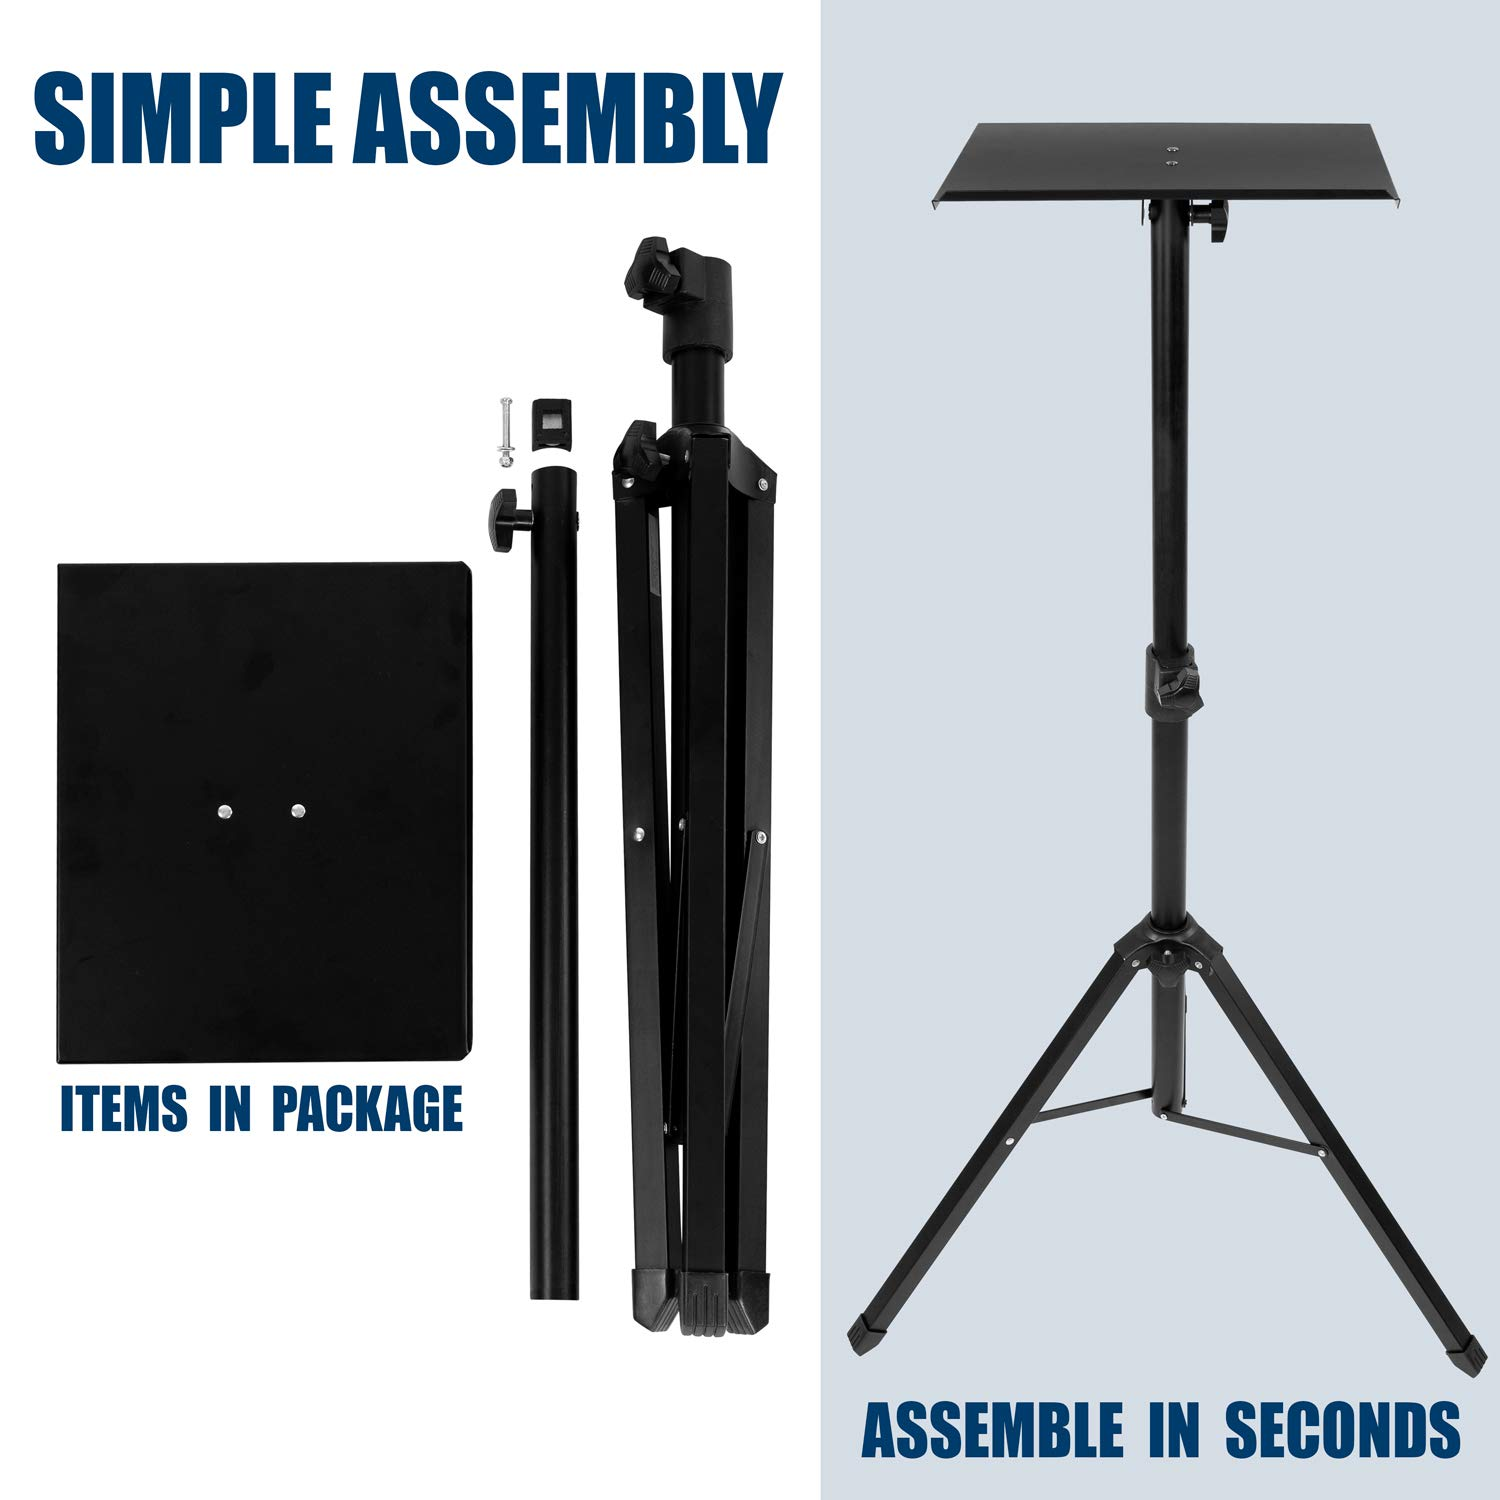 Mount-It! Tripod Projector Stand, Adjustable DJ Laptop Stand with Height and Tilt Adjustment, Portable Laptop Projector Table with Steel Tripod Base and Tray, Black by Mount-It! (Image #6)